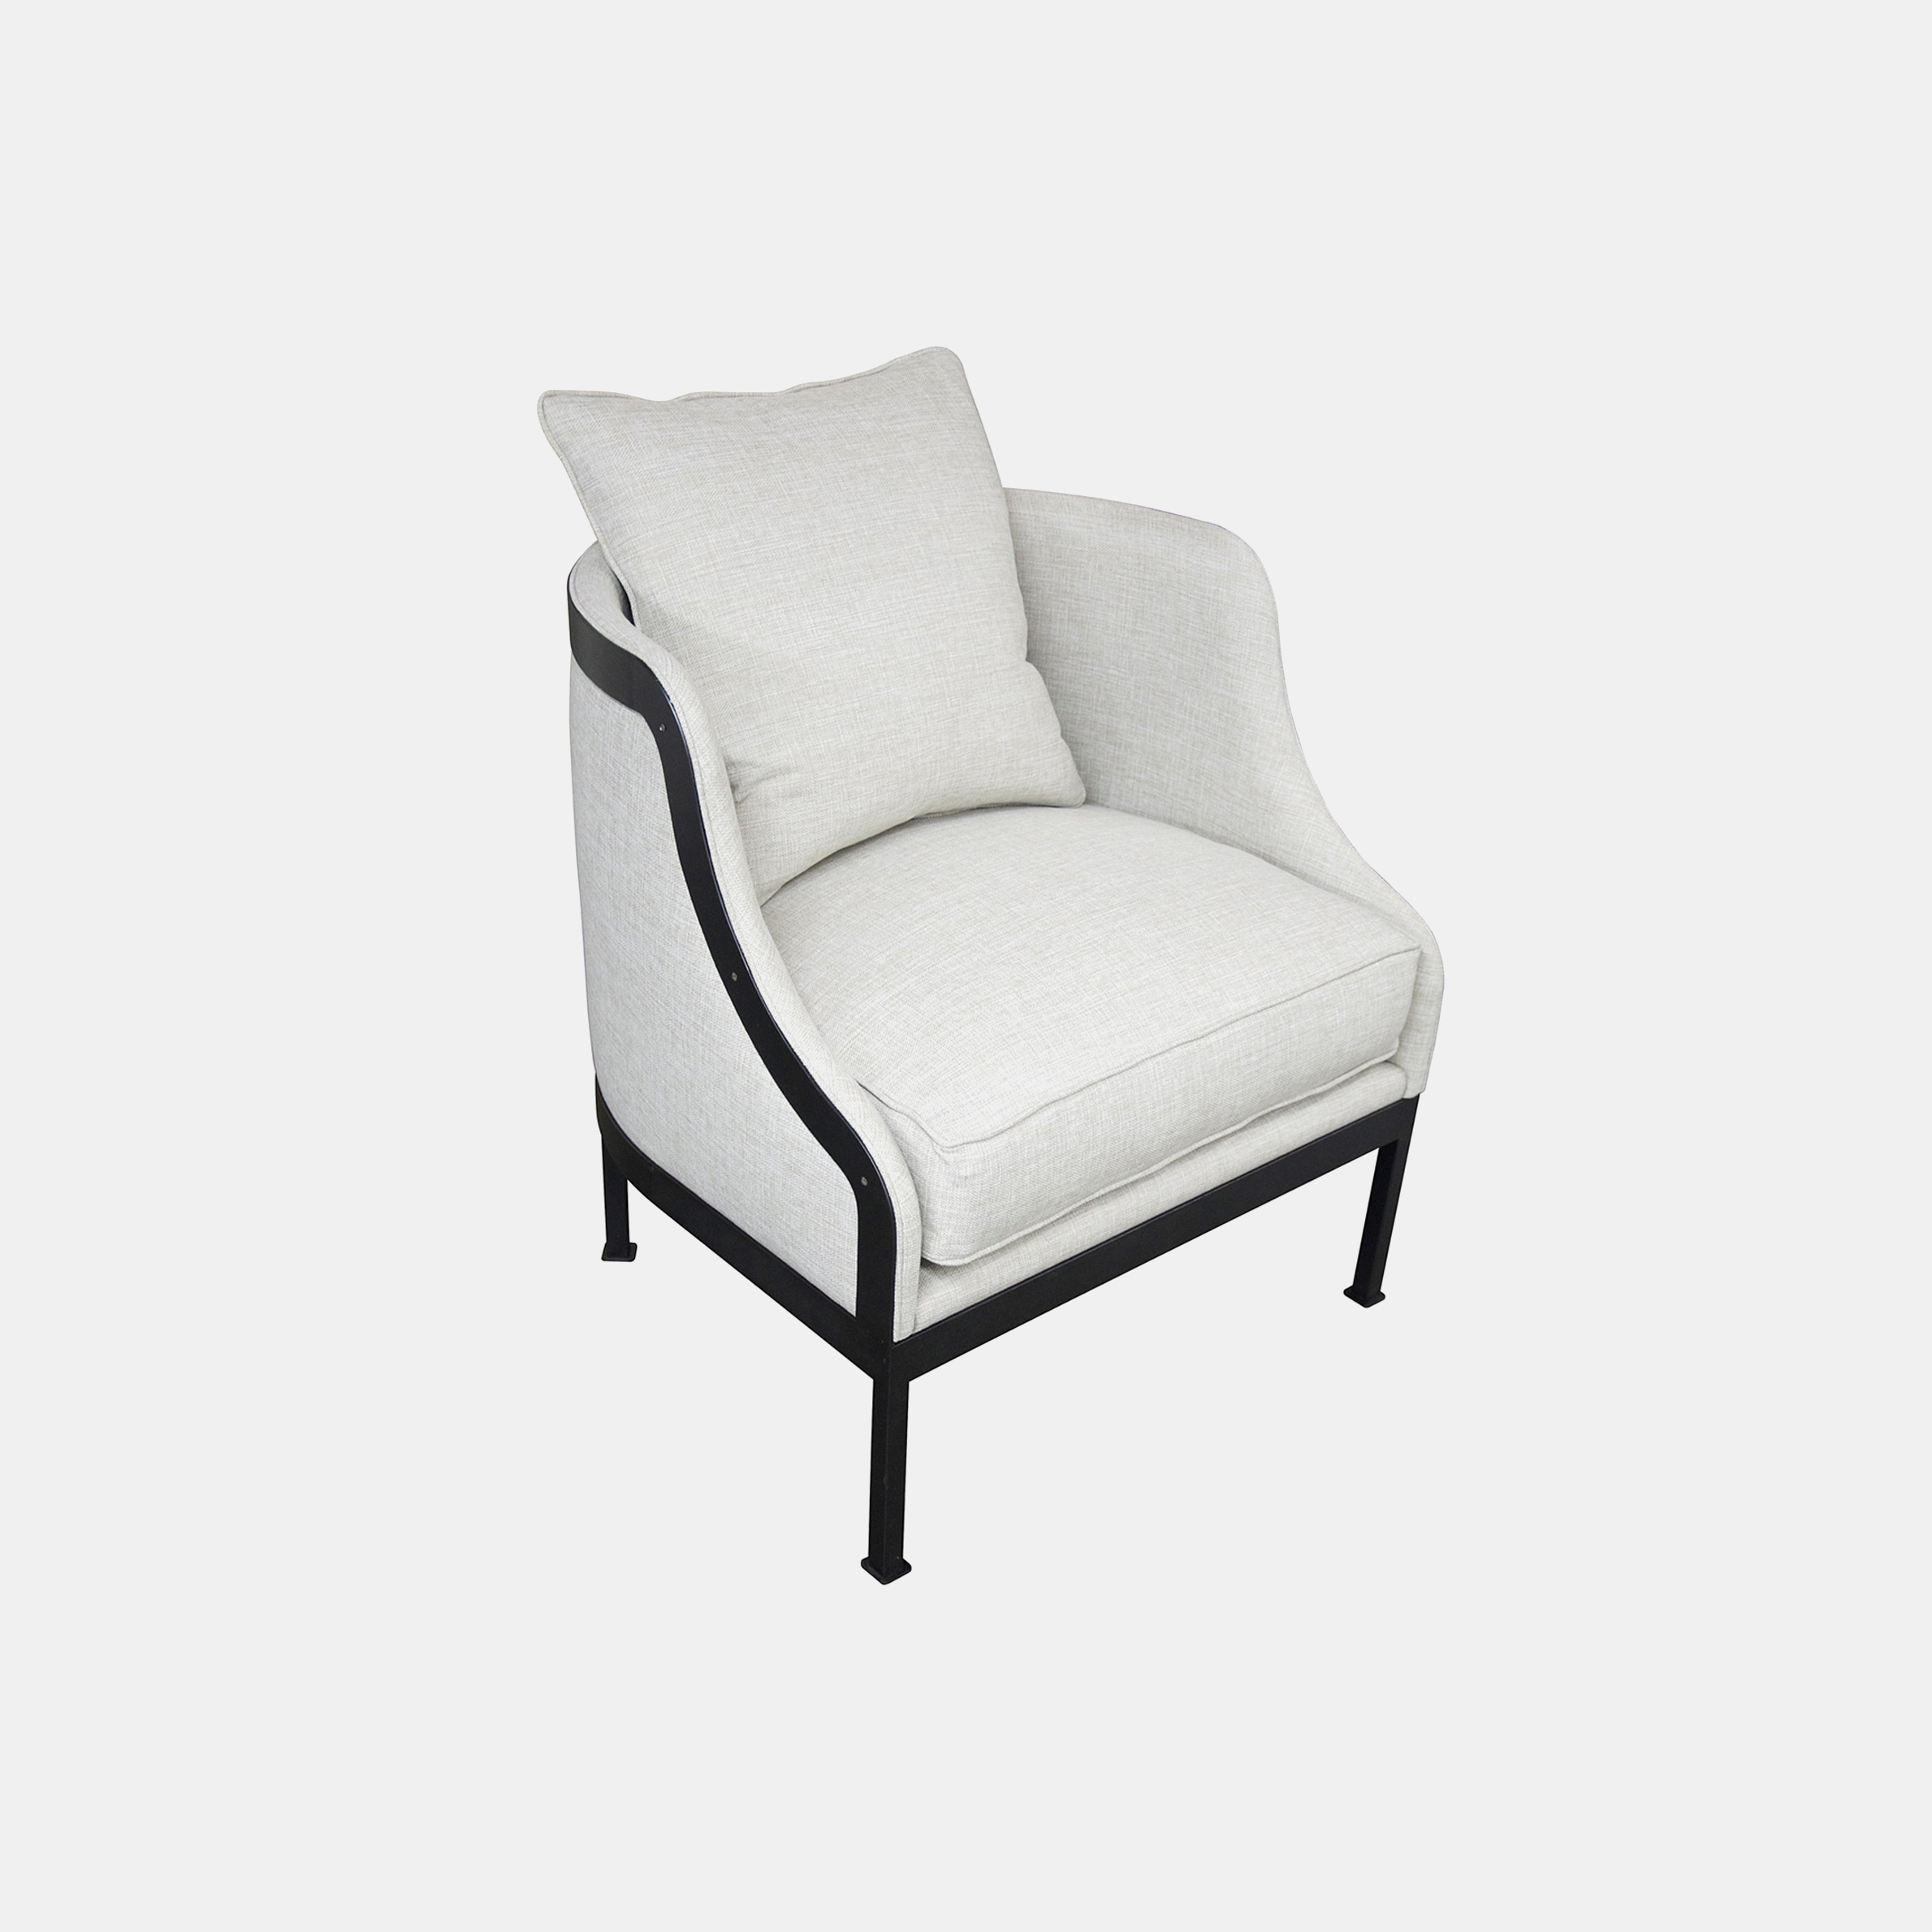 "Lotus Chair  30.5""w x 30""d x 32.5""h  Also available as sofa. SKU667CFC"